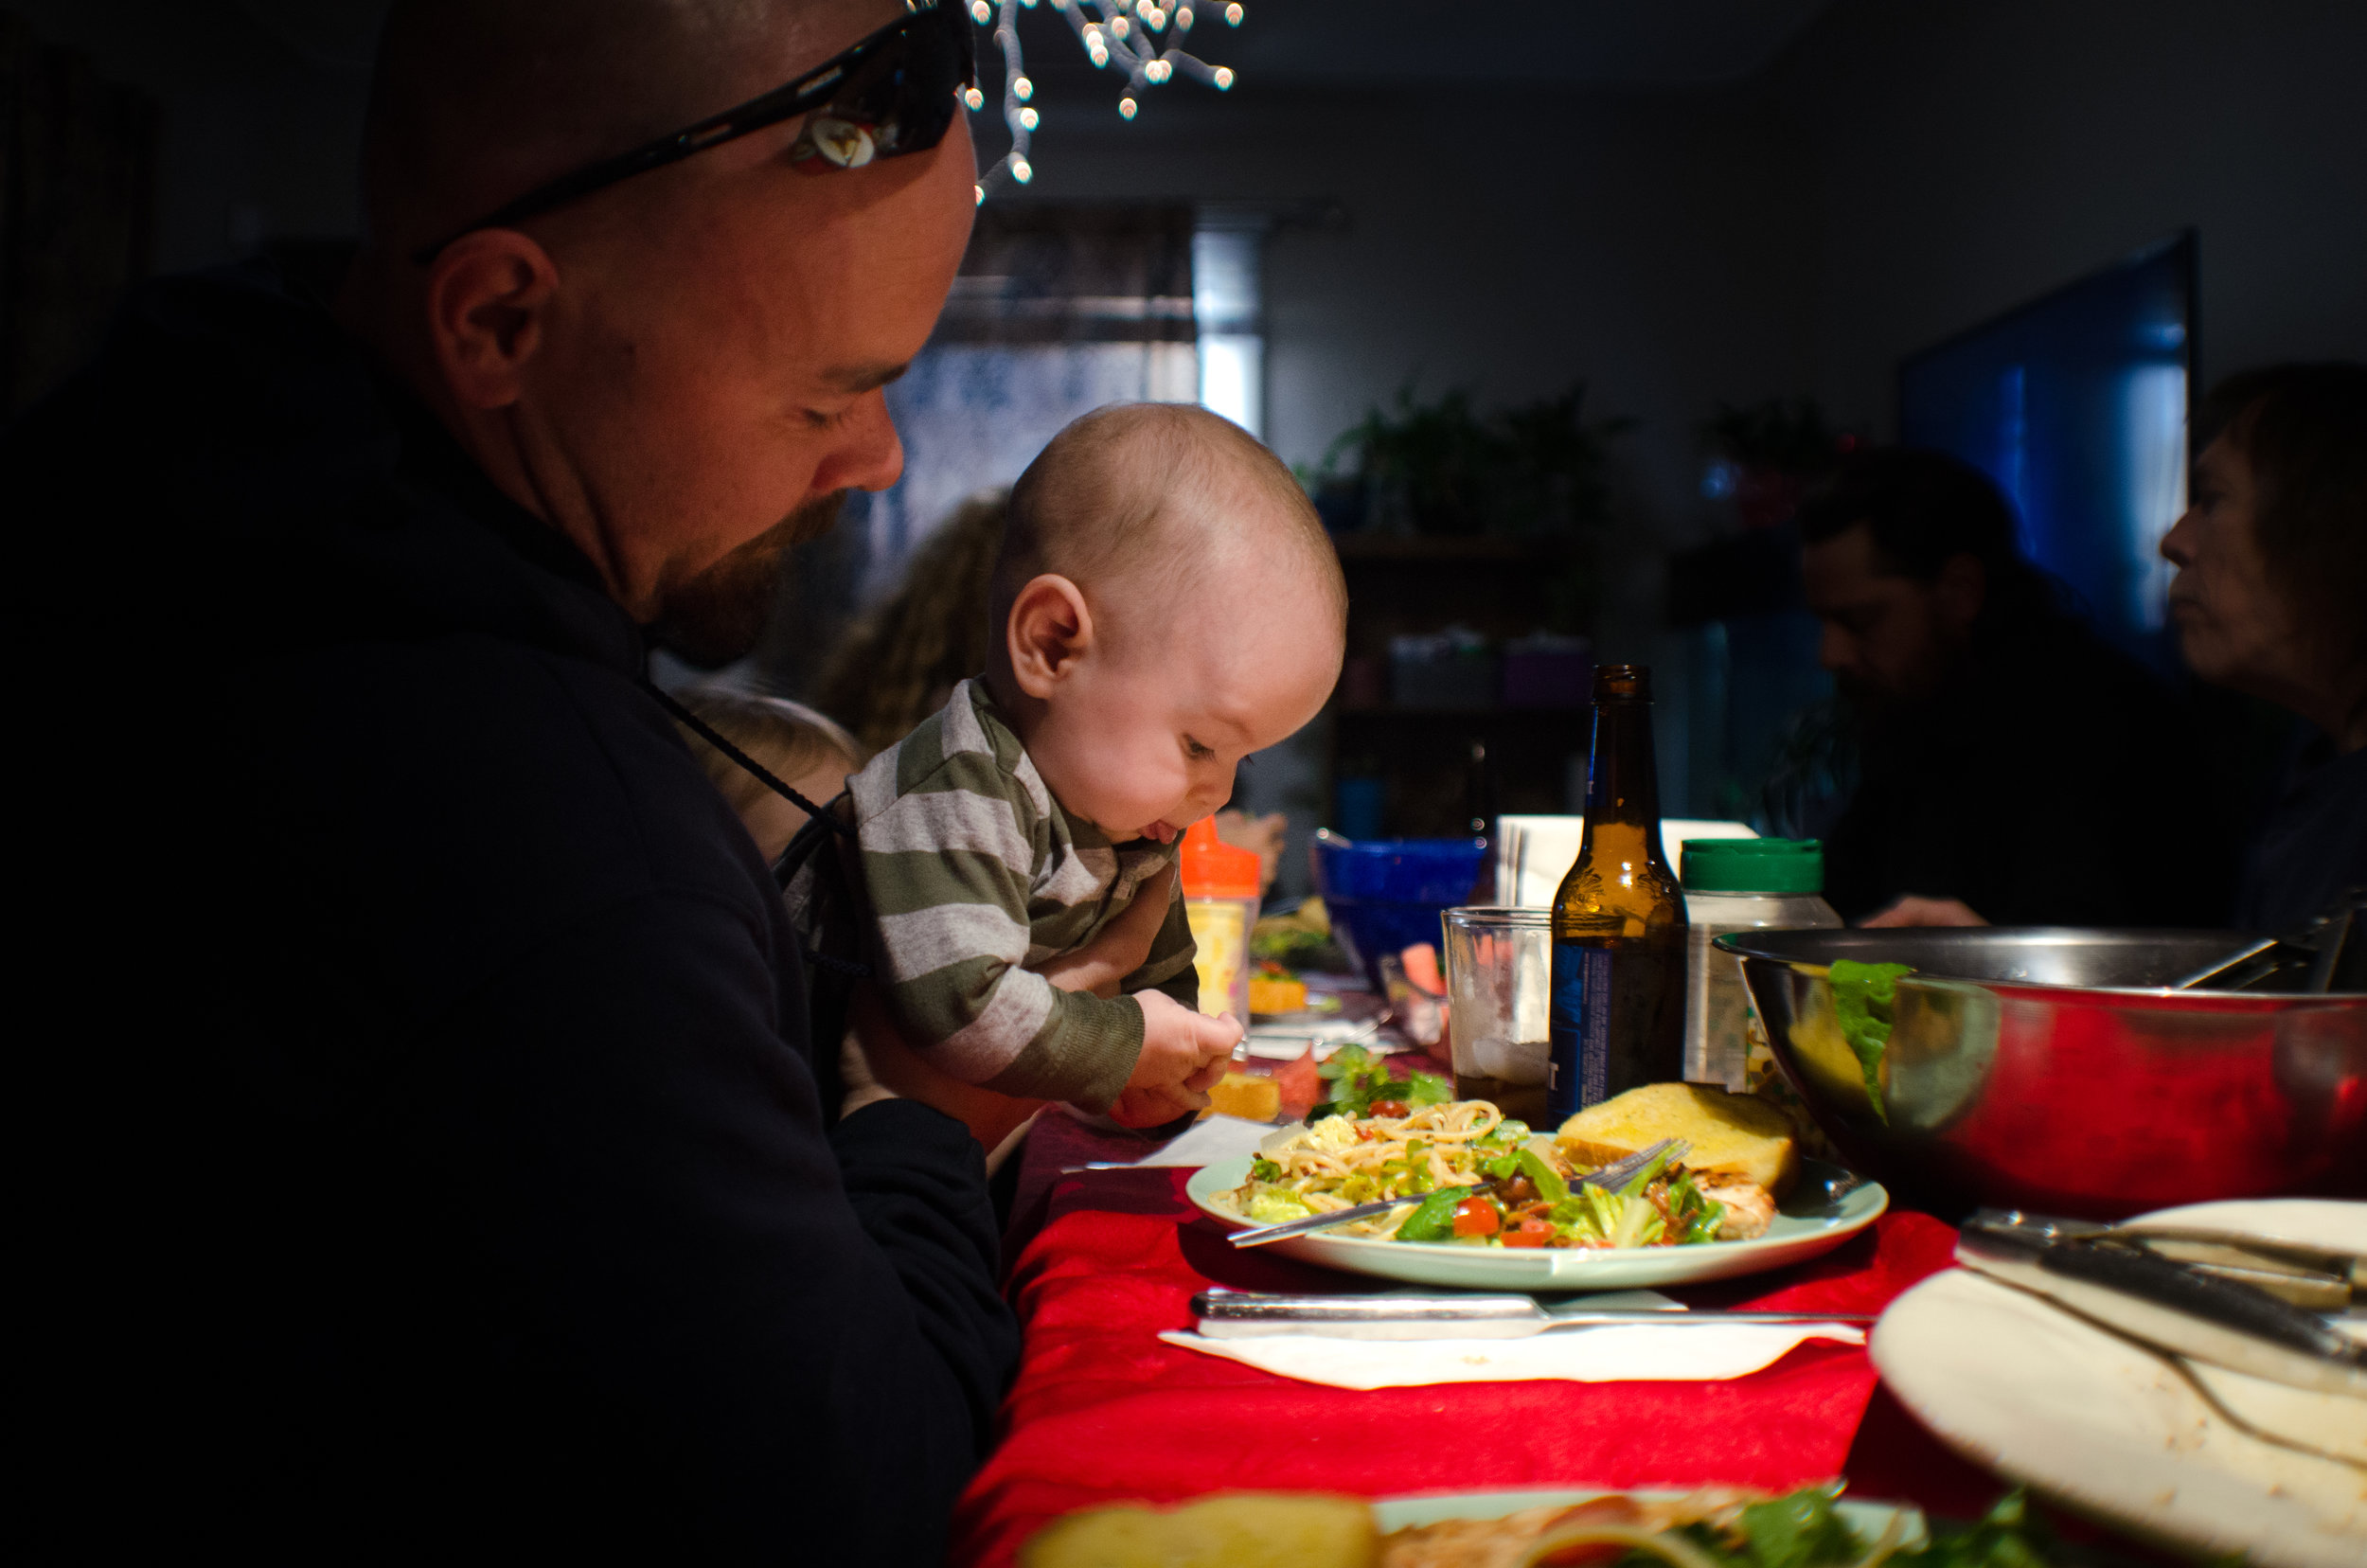 let me at it, babyled weaning, table foods, miracle kisses photography